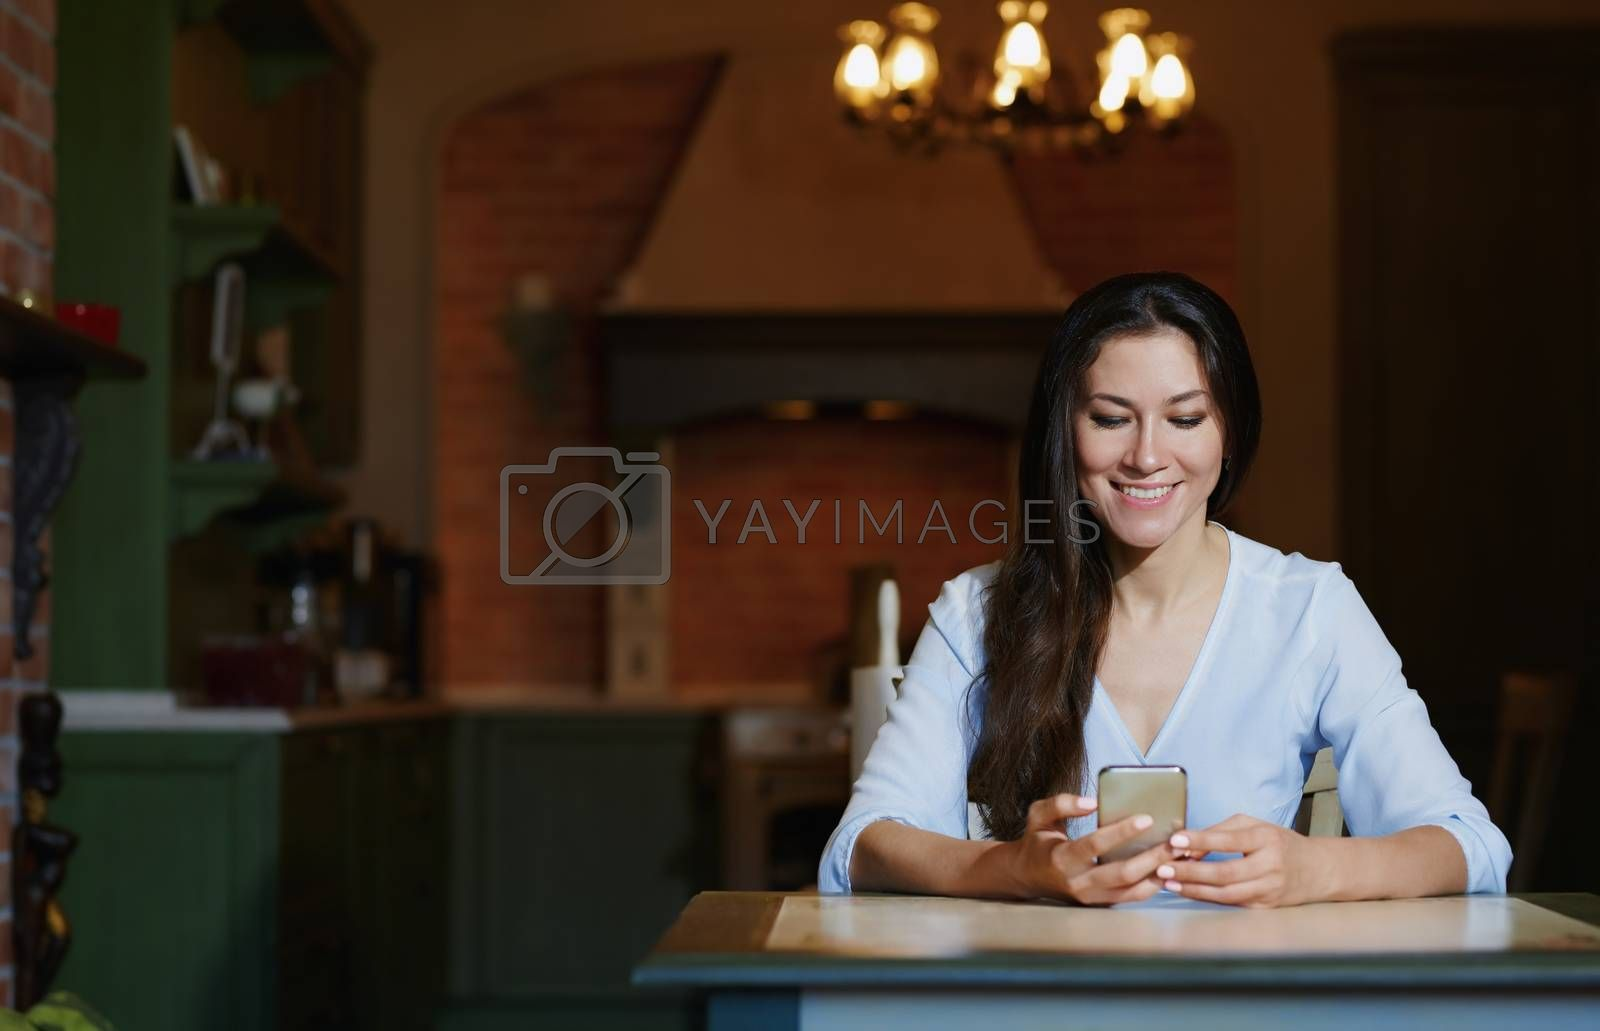 Smiling woman sitting and table and using smartphone by Novic